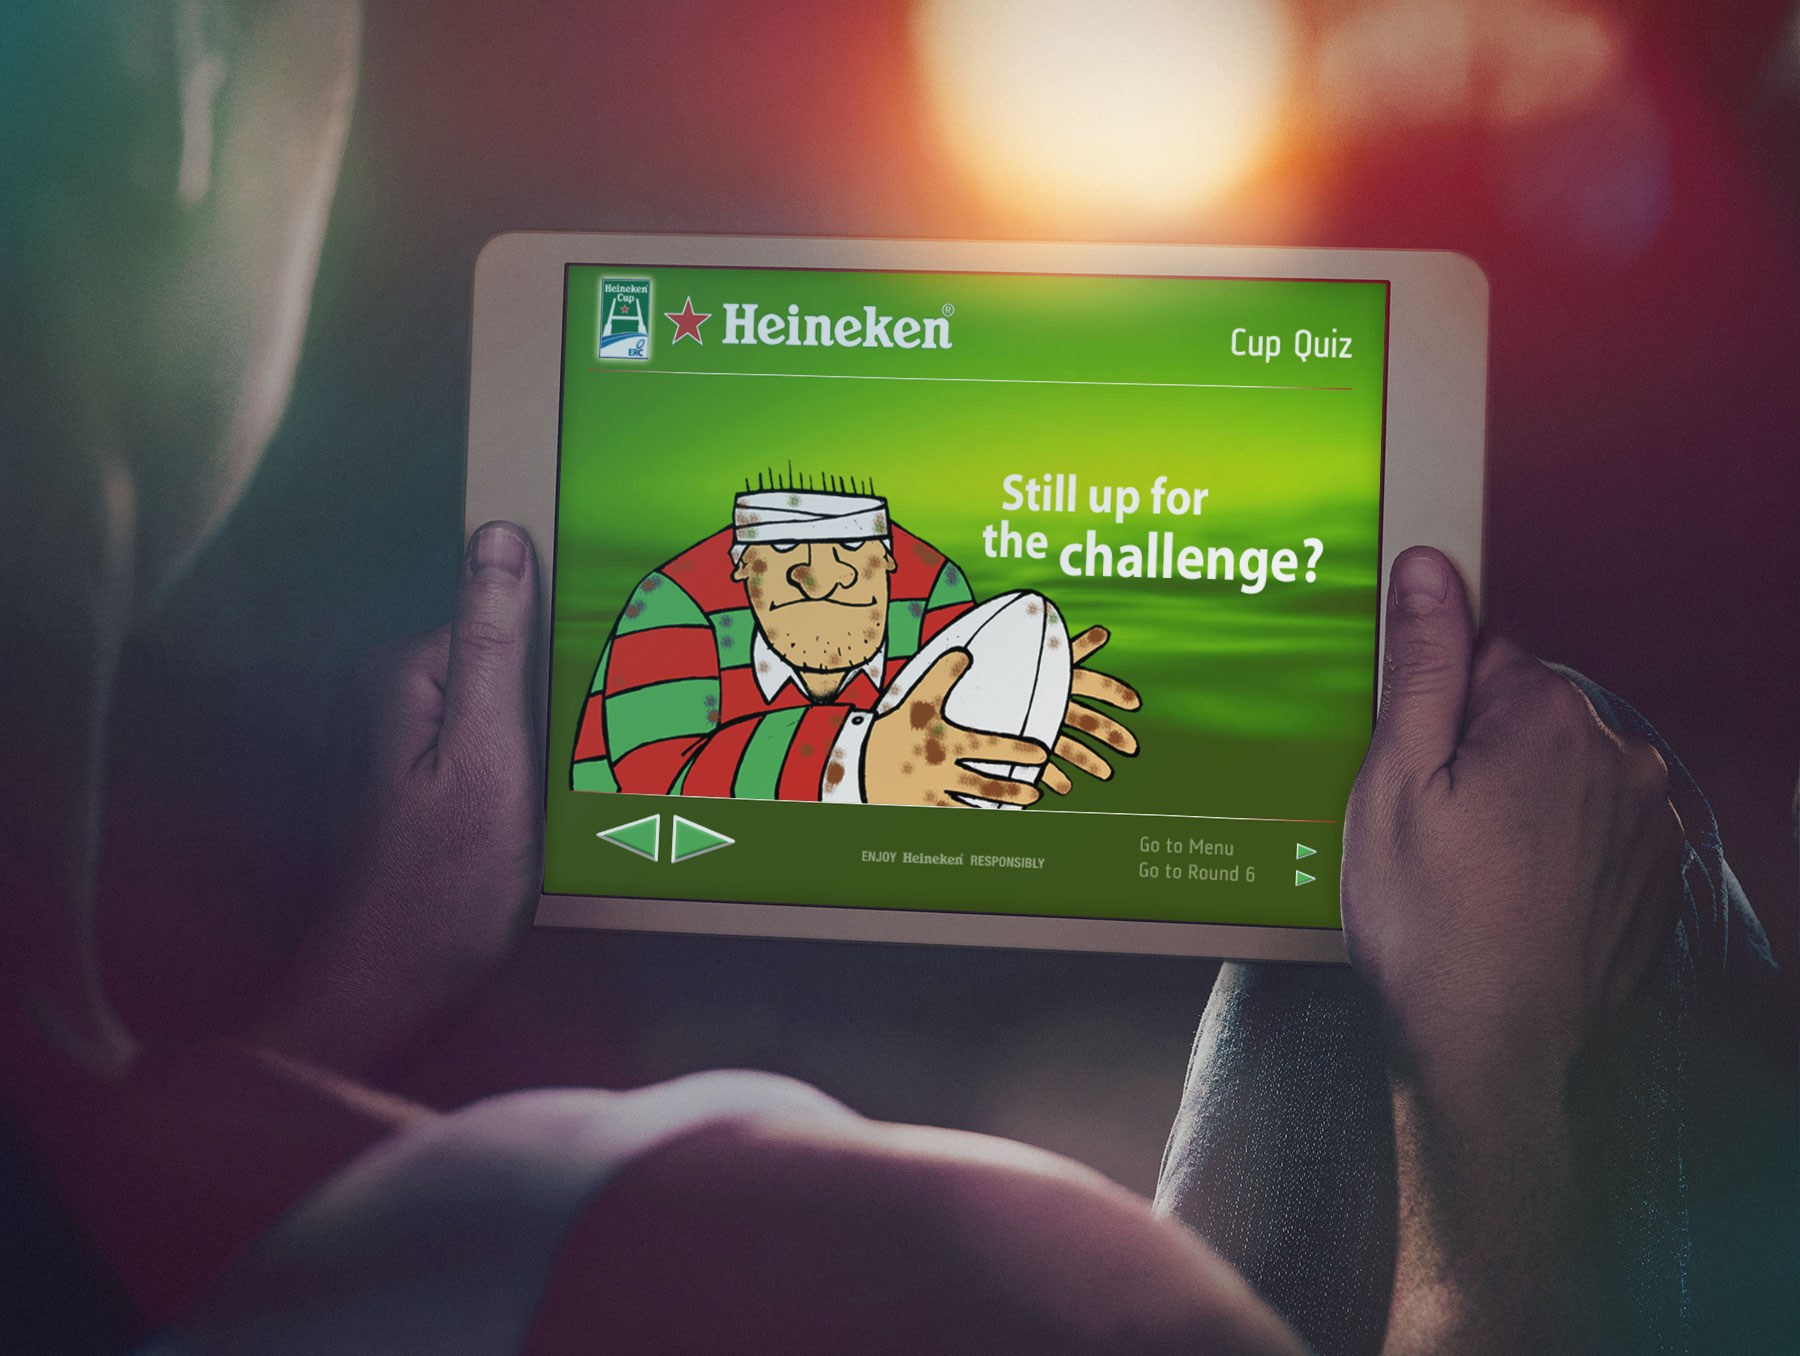 The European Rugby Champions Cup quiz for Heineken -